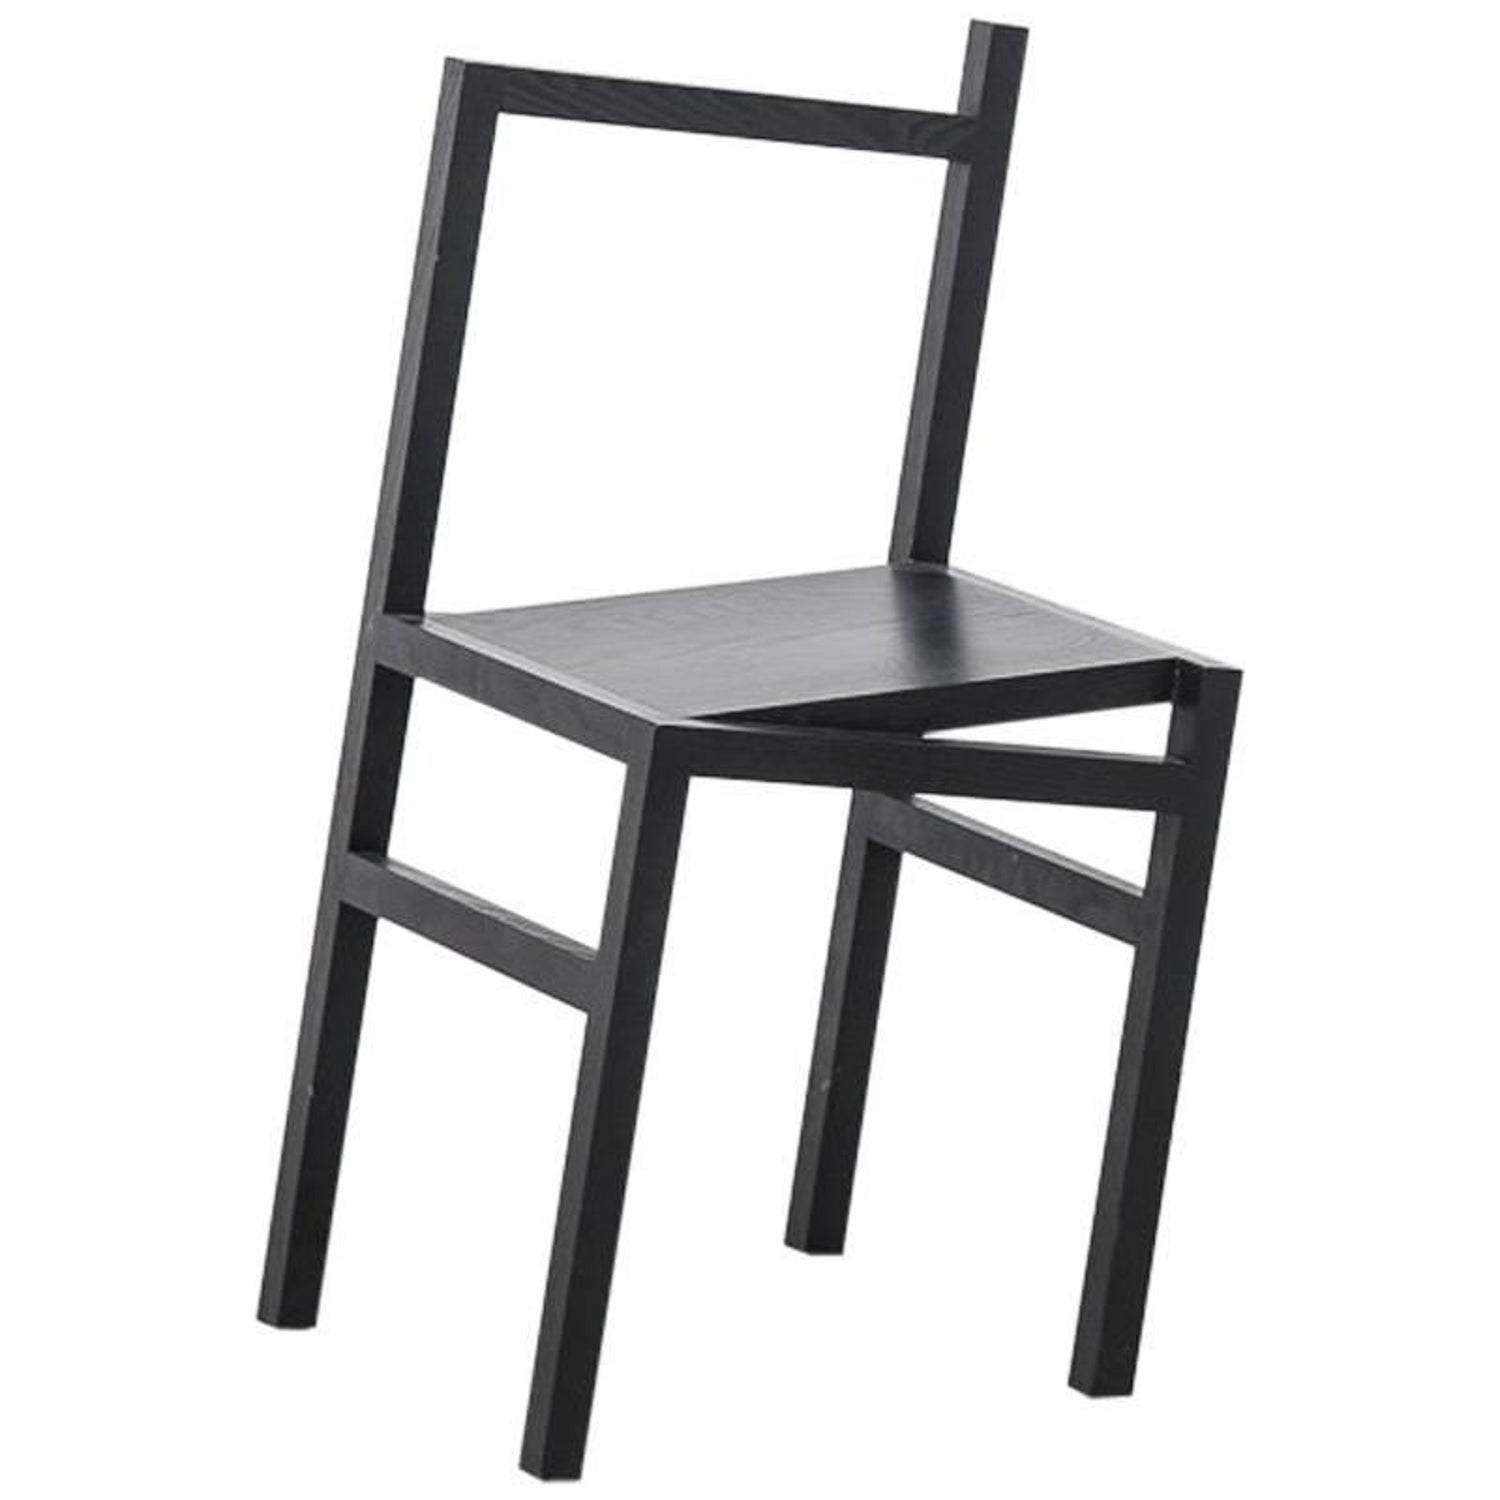 Early 2000s Chairs 76 For Sale at 1stdibs